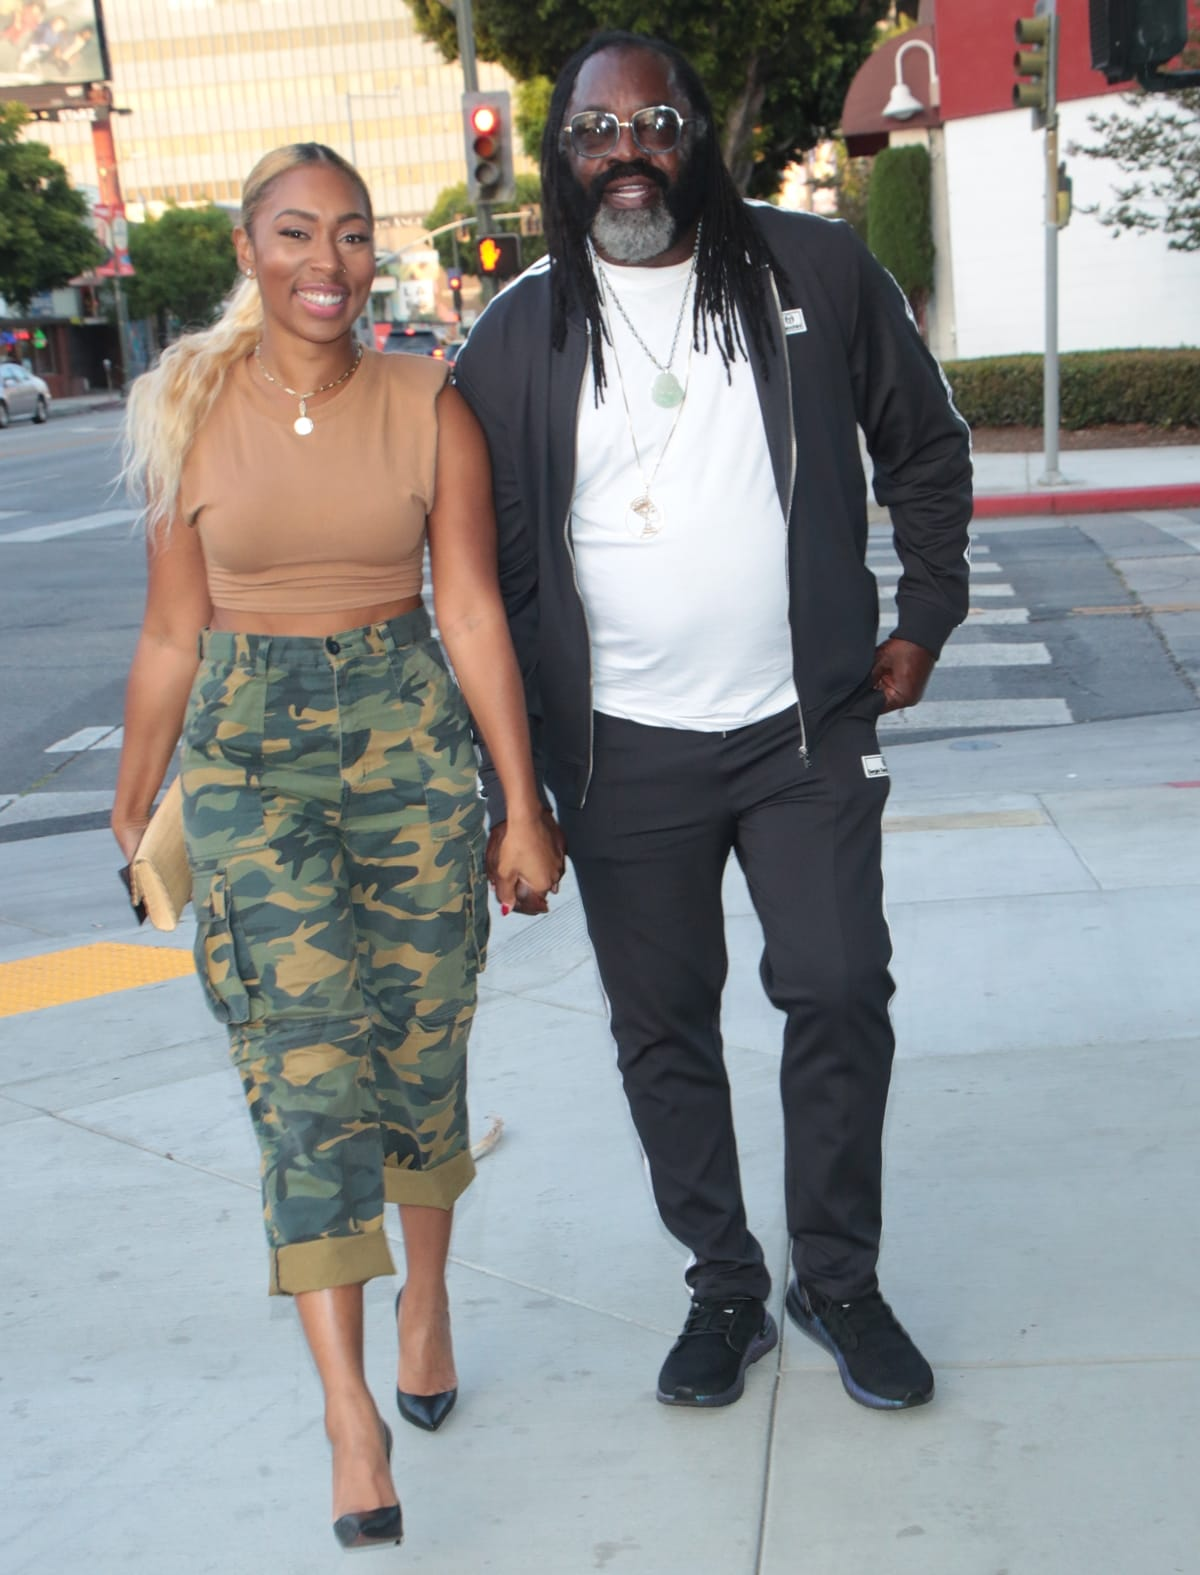 Niki McElroy and Kazembe Ajamu Coleman holding hands in Los Angeles